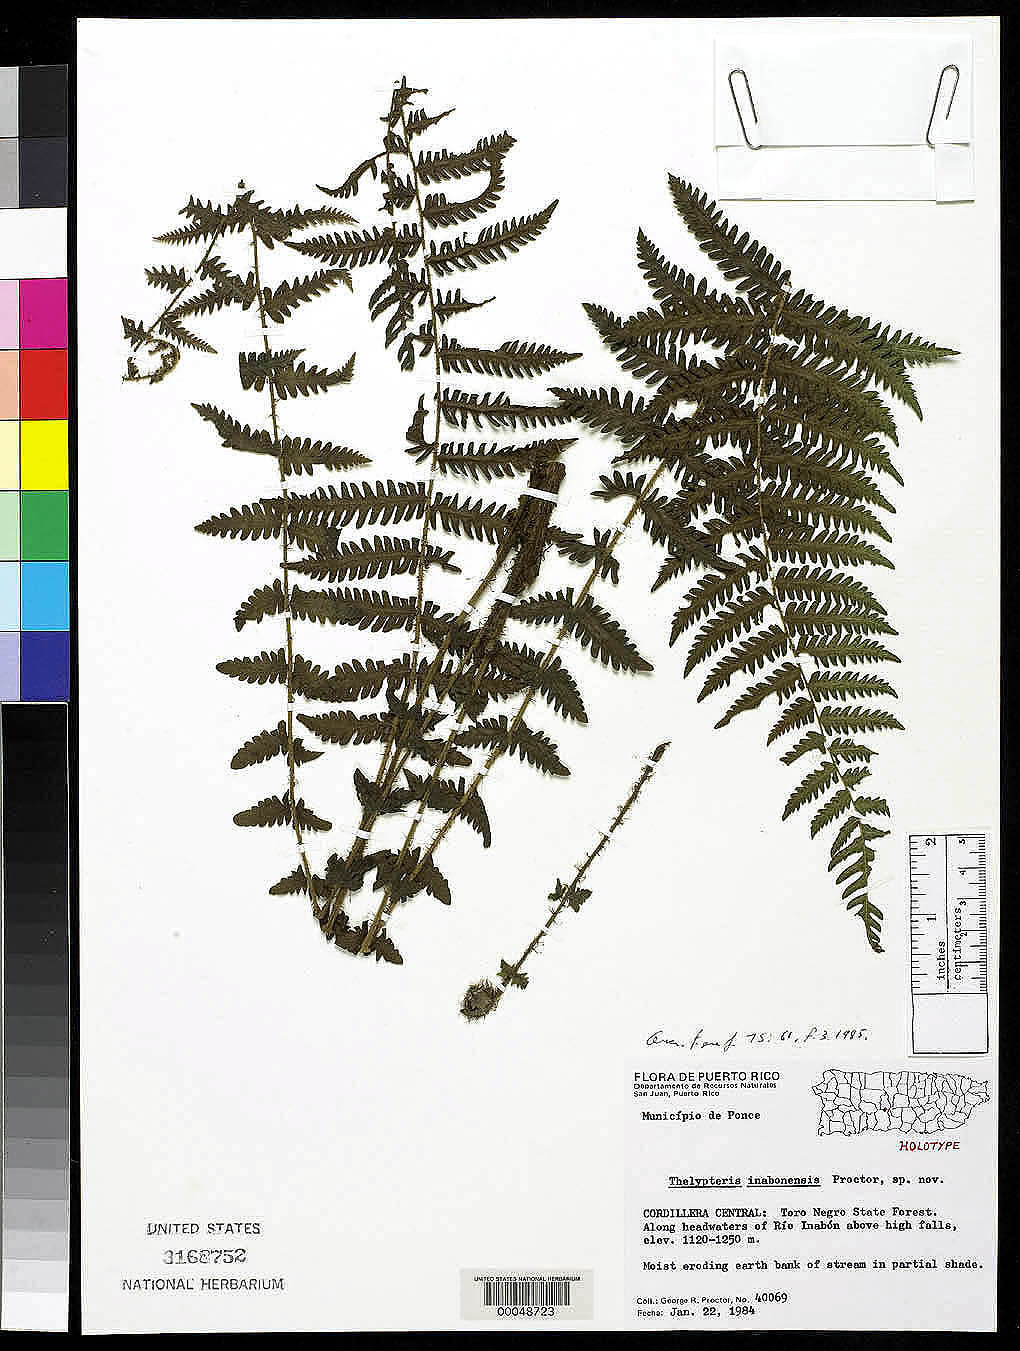 Thelypteris inaboensis